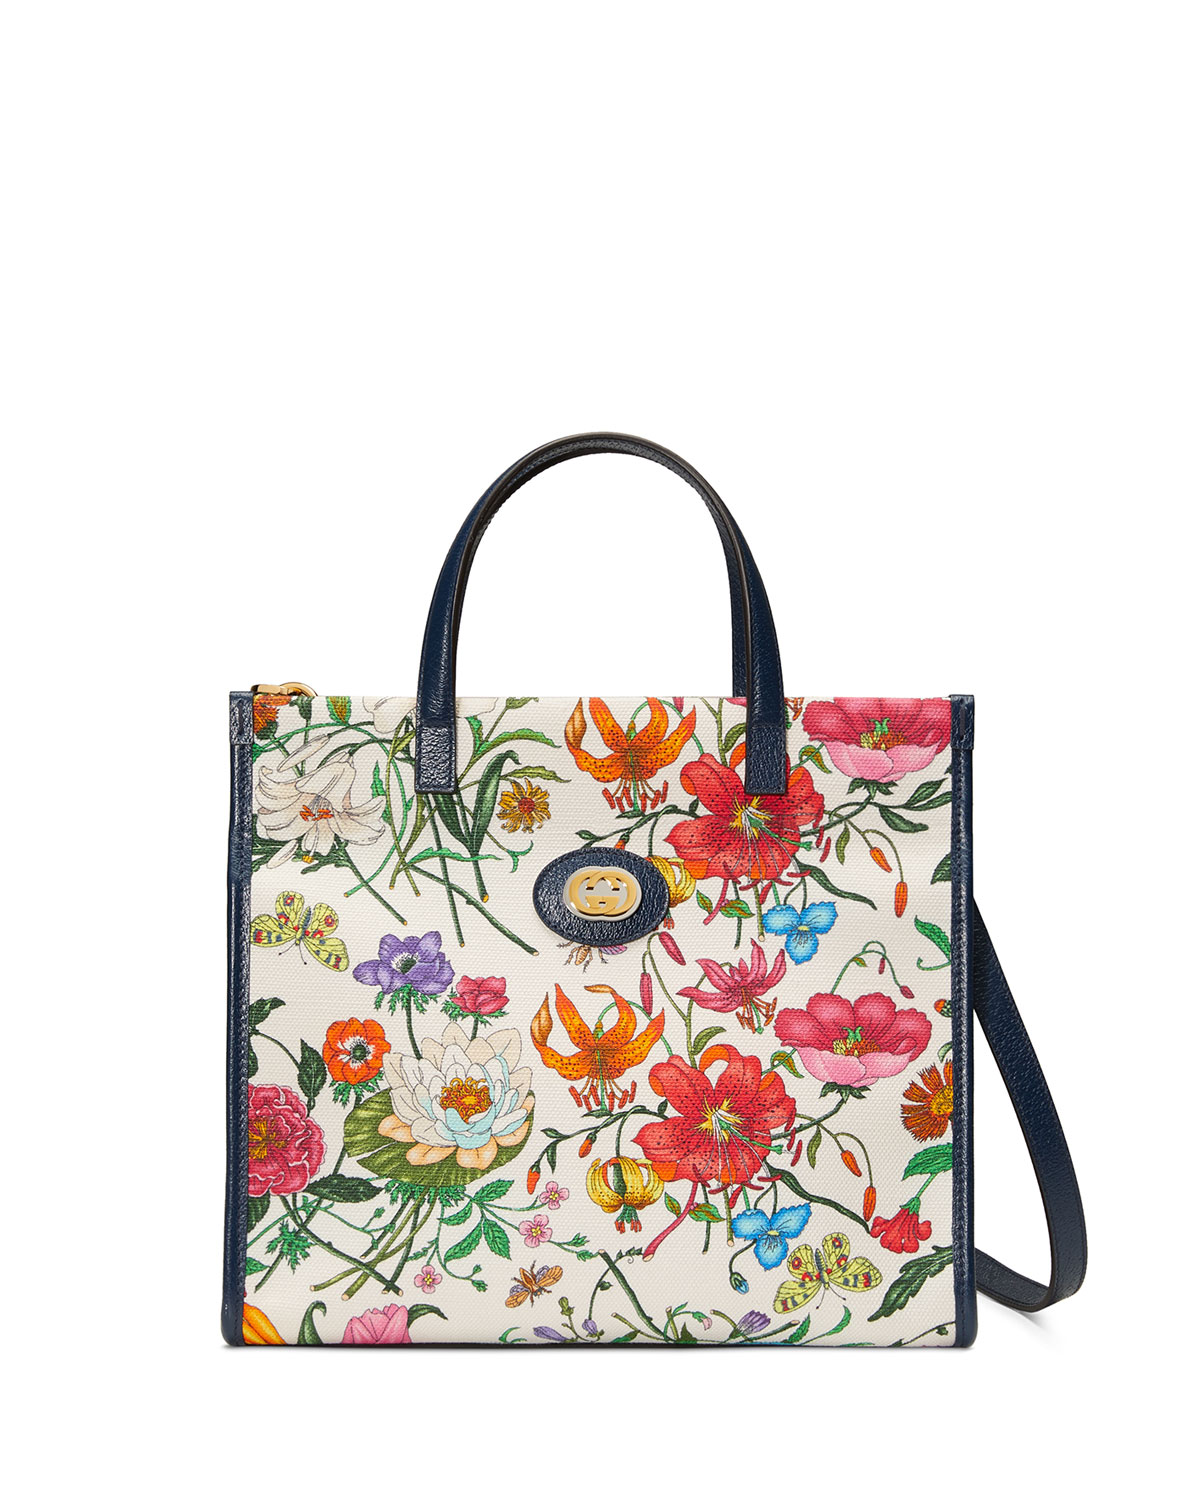 Gucci Flora Small Canvas Tote Bag  3dbb7ceacaf3a